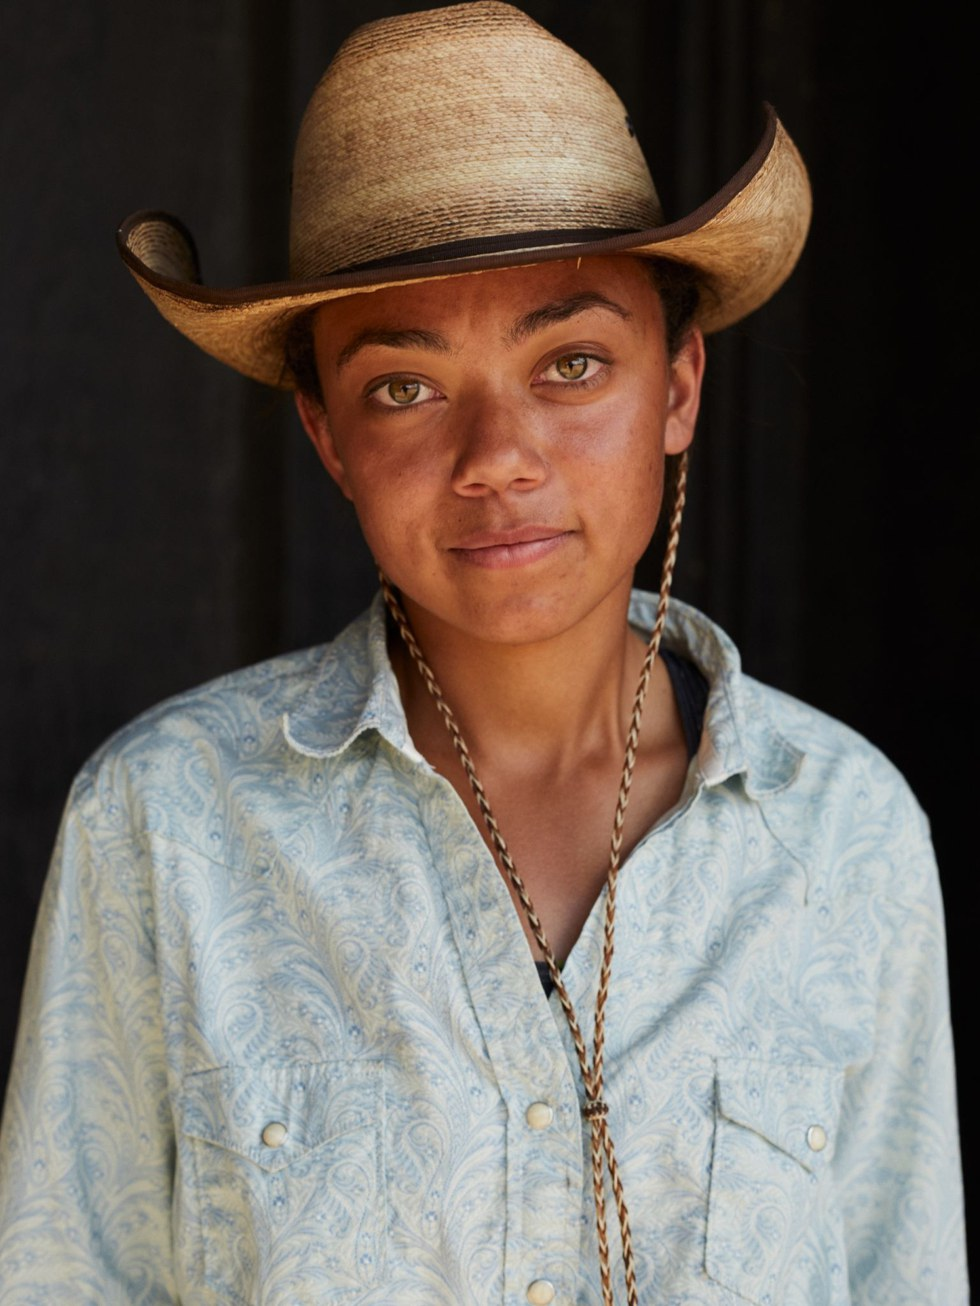 A cattle wrangler at Paws Up